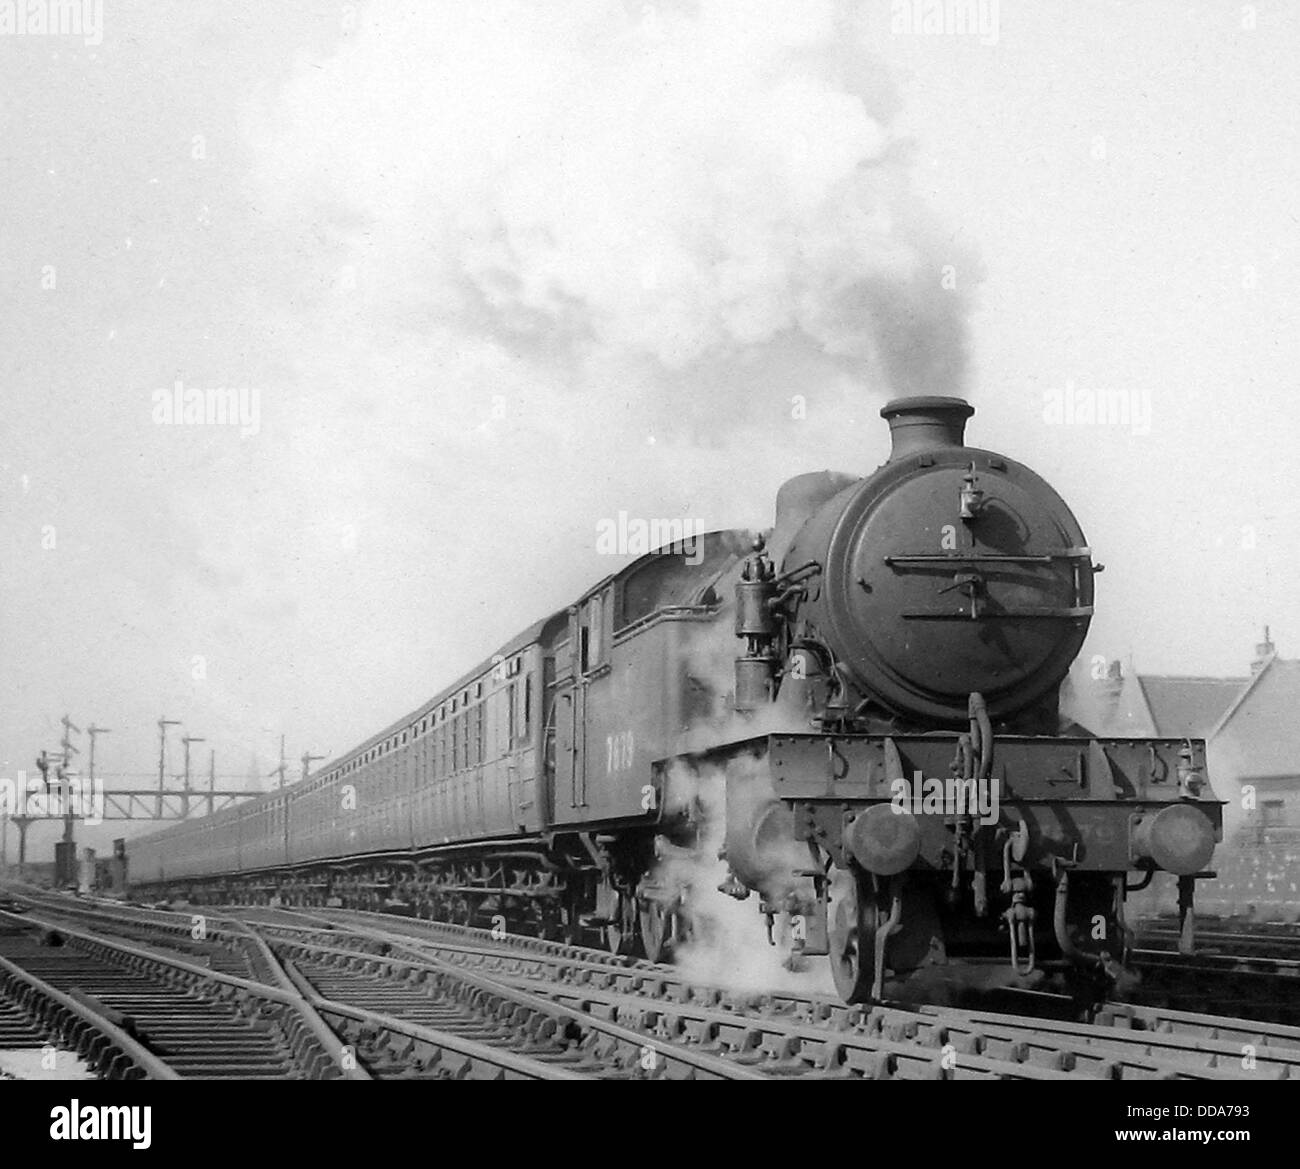 Steam locomotive No. 7679 possibly 1930 - Stock Image